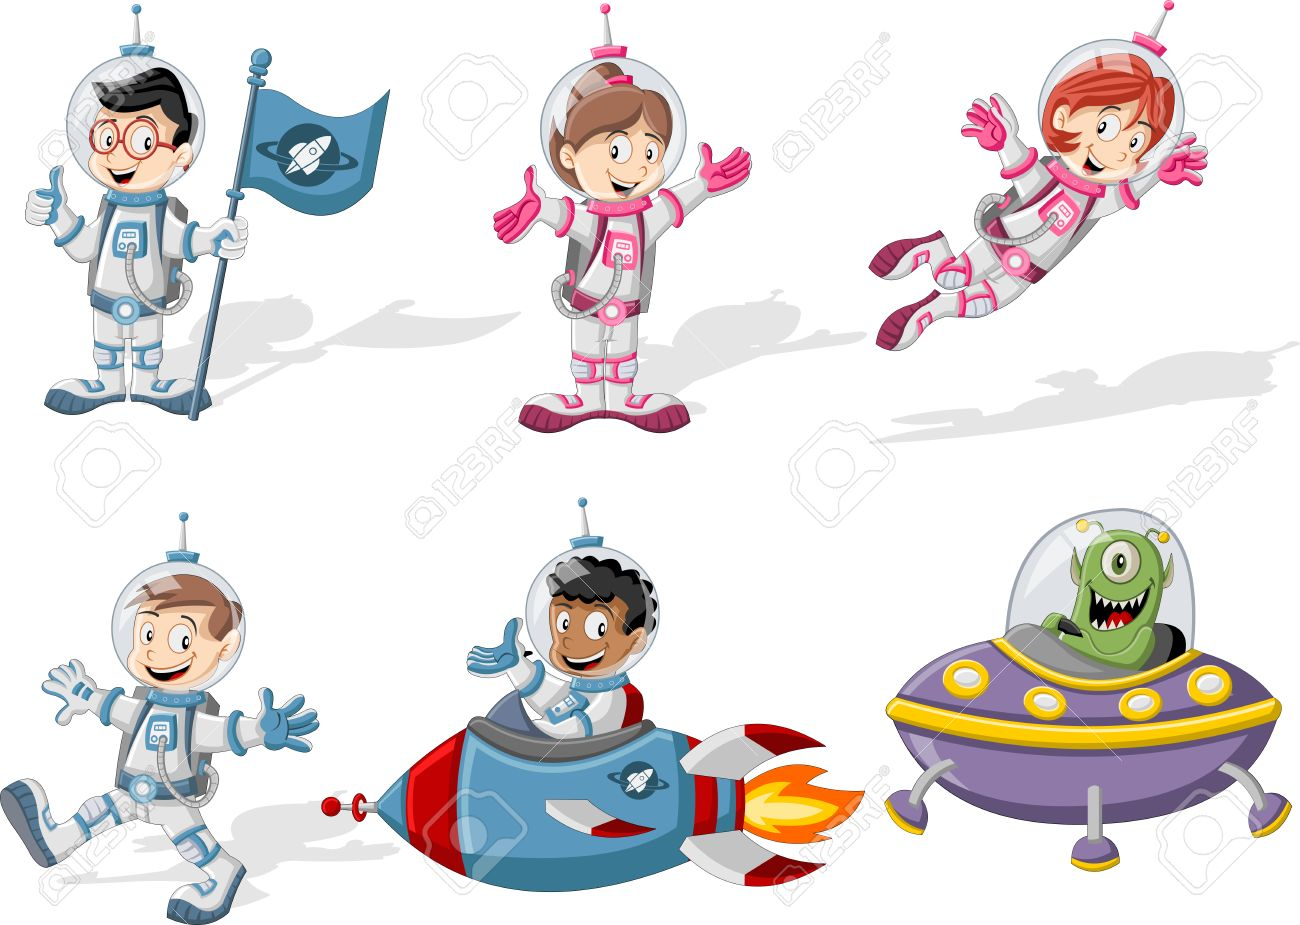 astronaut cartoon characters in outer space suit with the alien